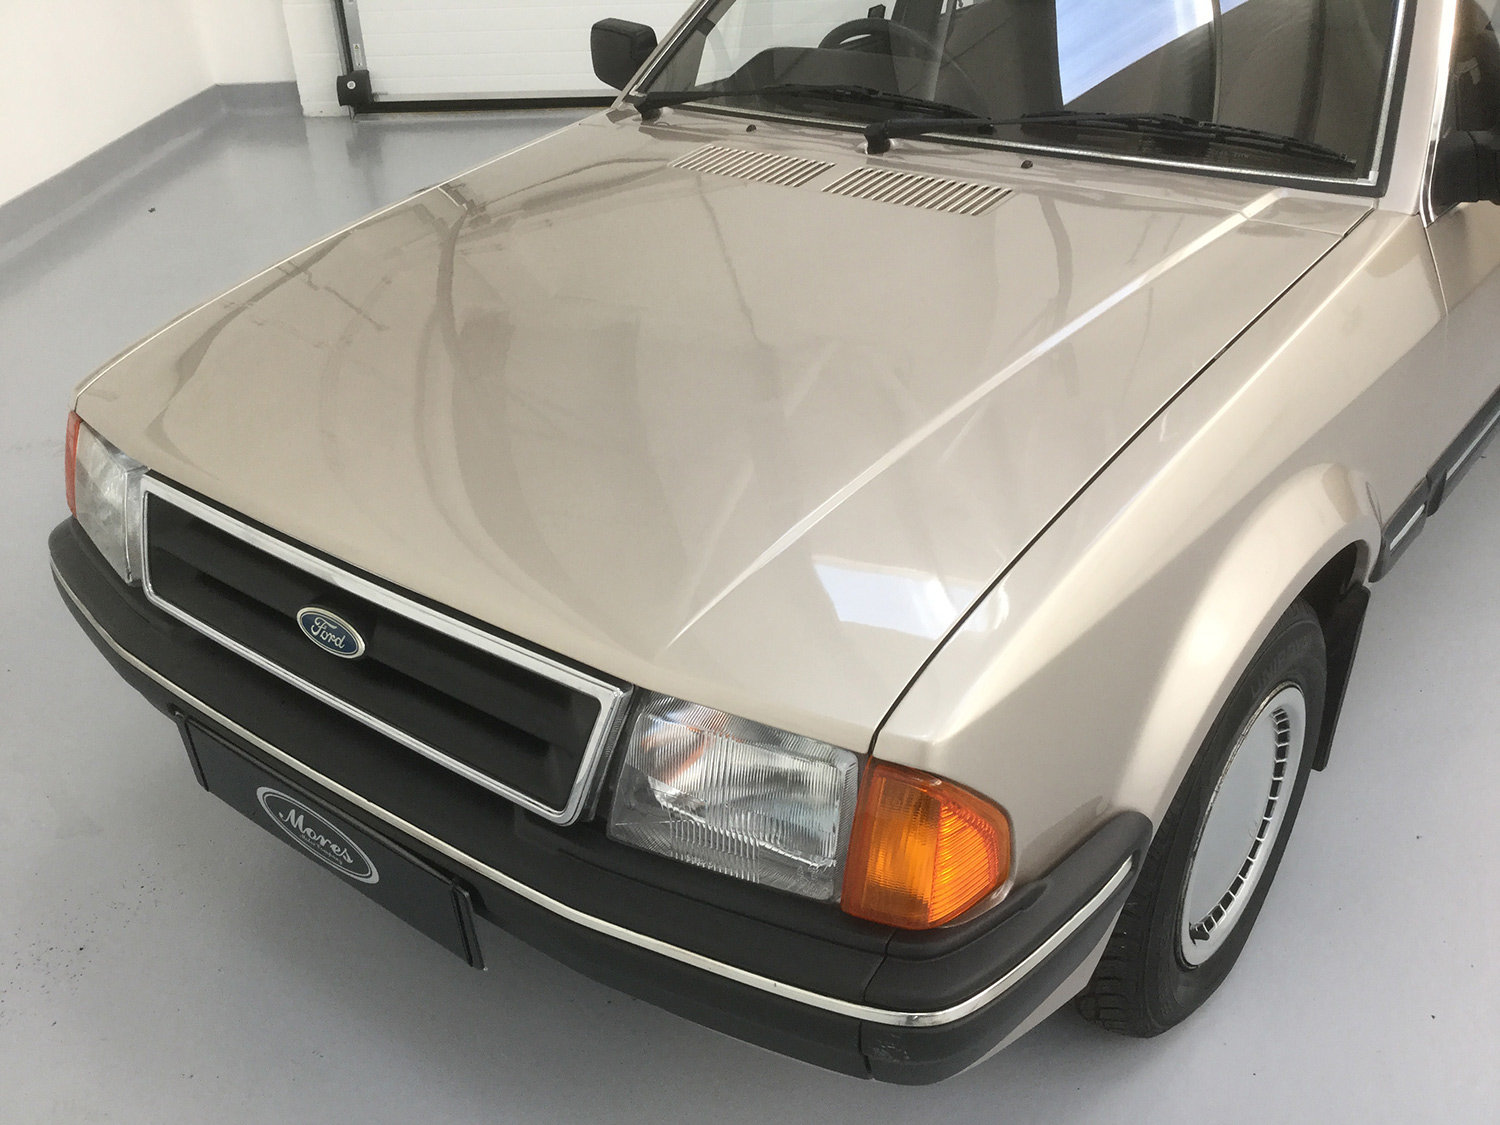 1984 Stunning Ford Orion 1.6GL Only 1 Owner For Sale (picture 9 of 10)